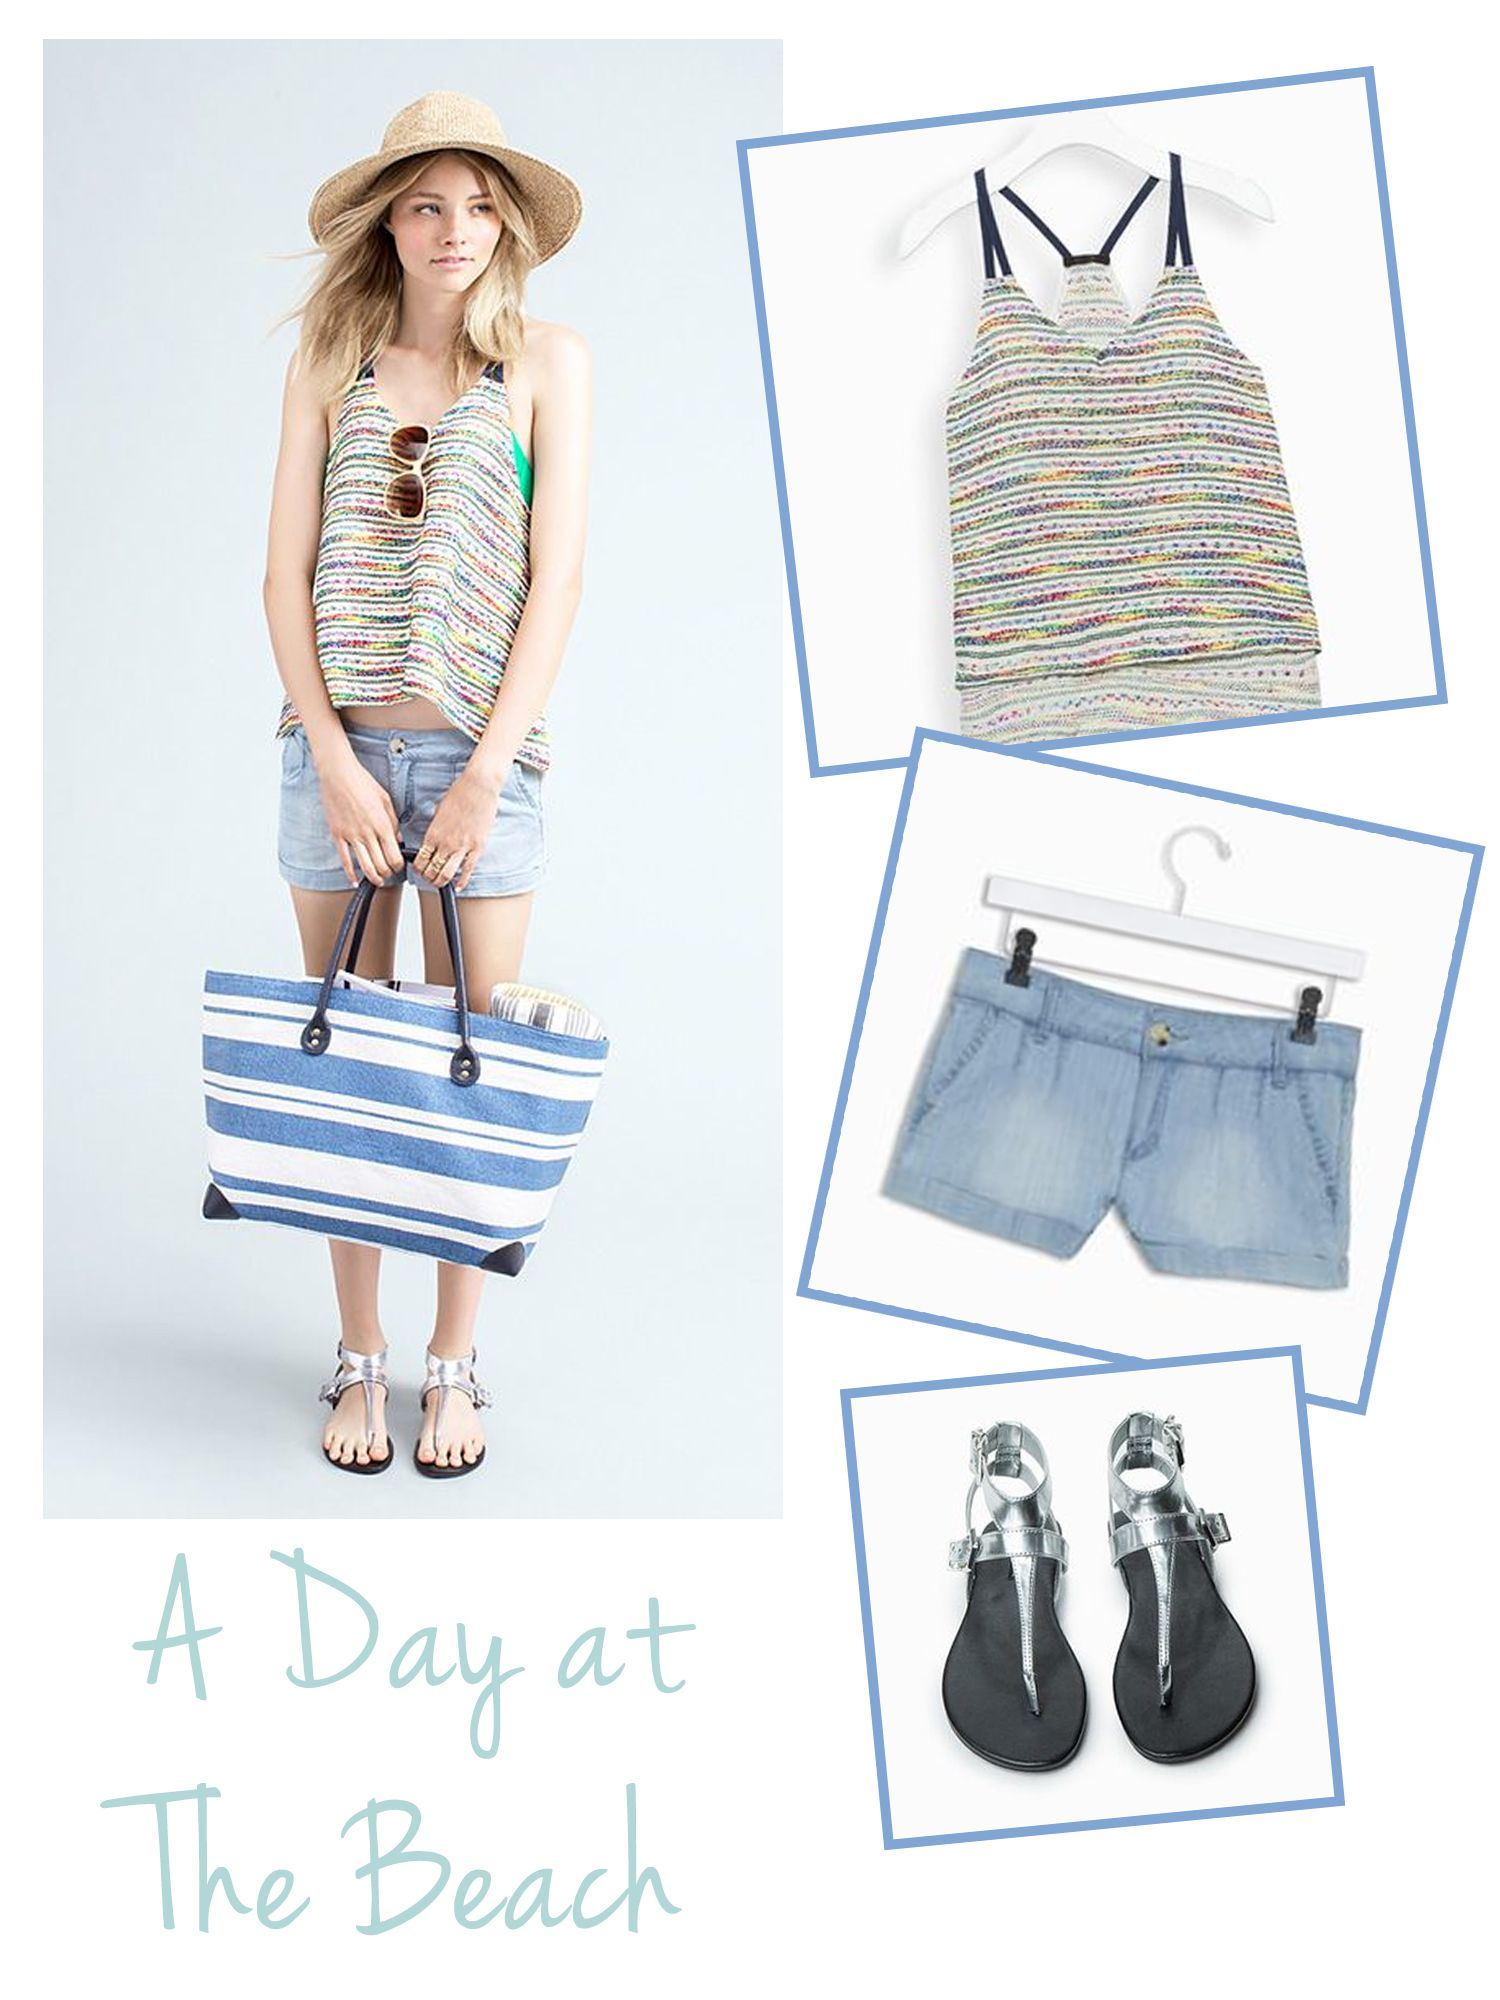 An outfit for a Day At The Beach! Love the top especially.